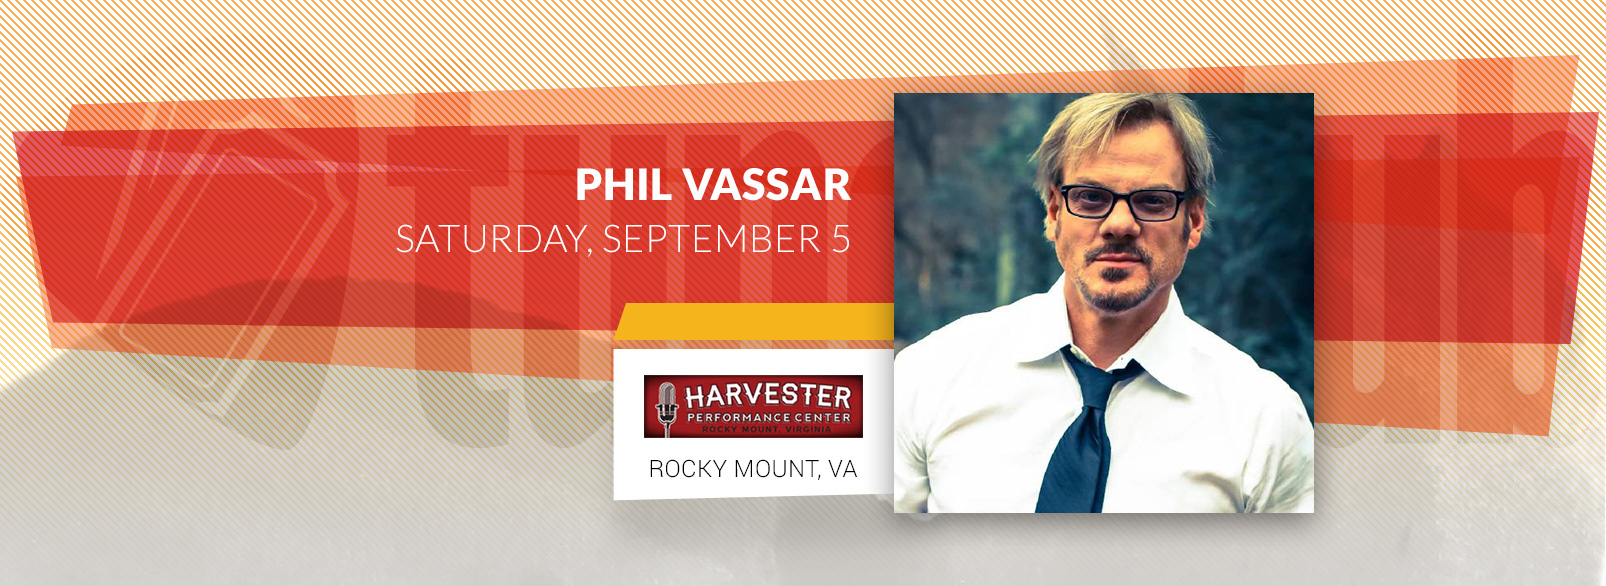 Phil Vassar @ Harvester Performance Center